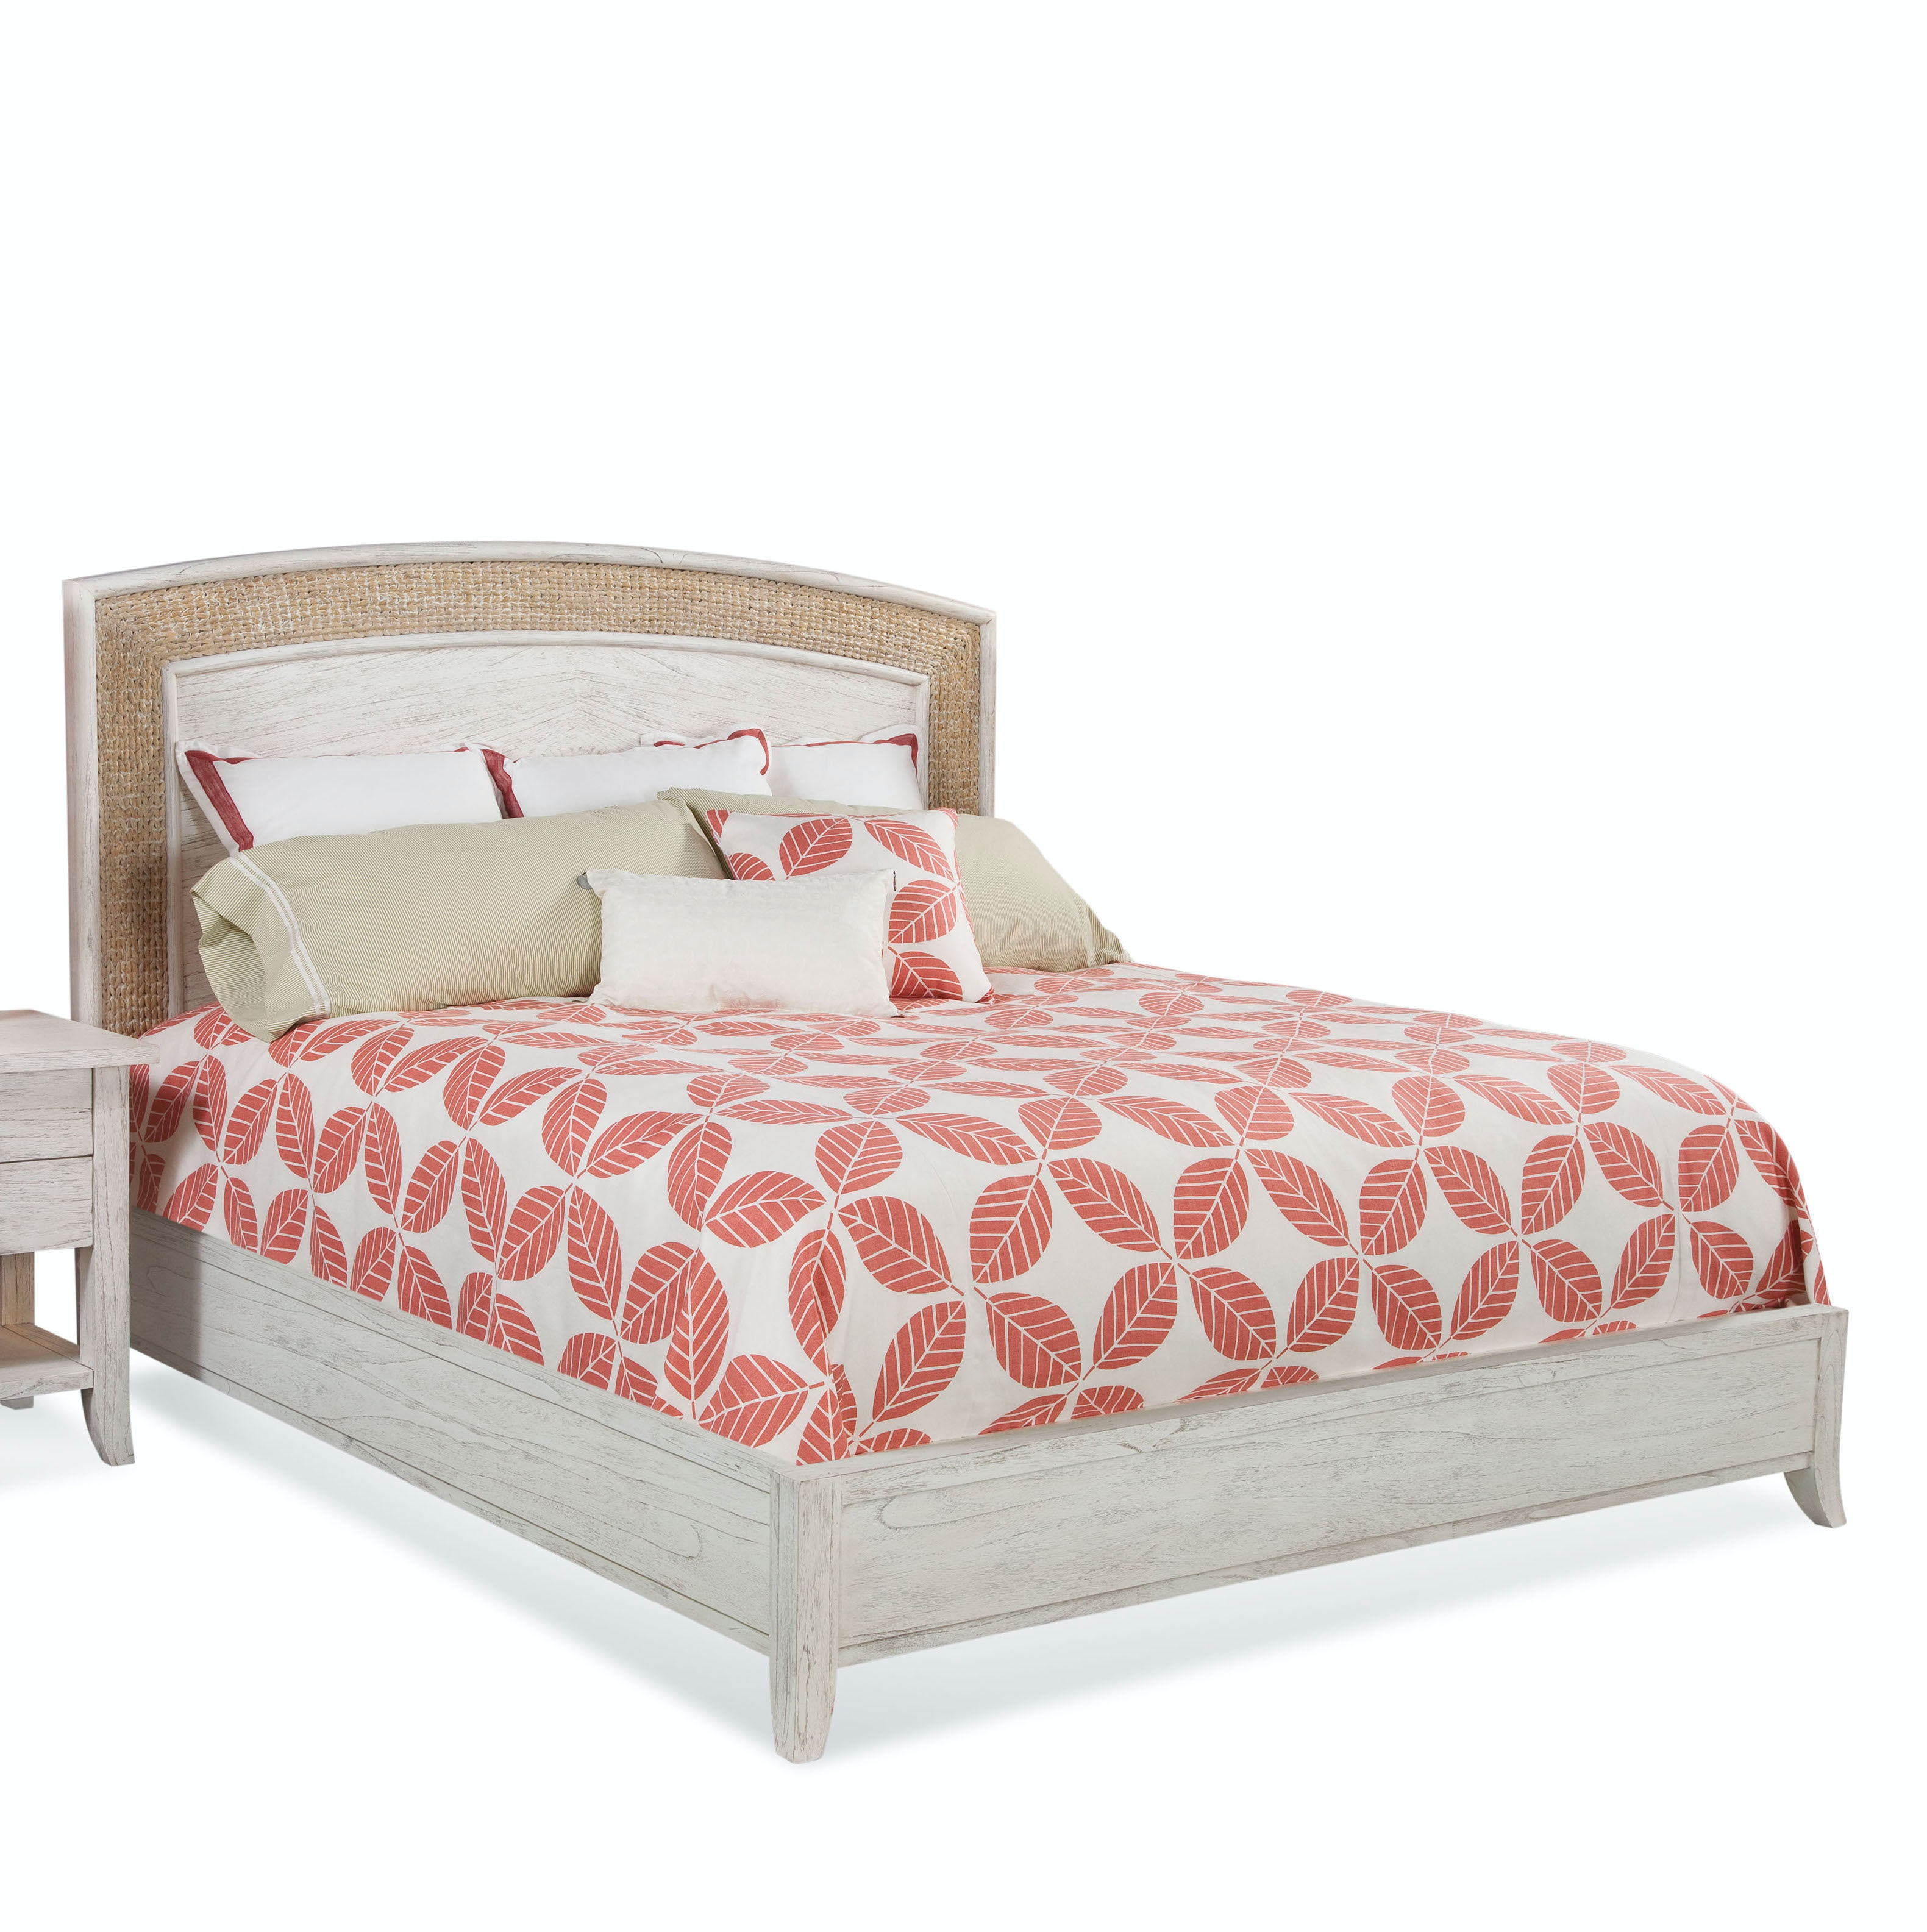 Fairwinds Arched Seagrass Bed 2932-ARC-BED